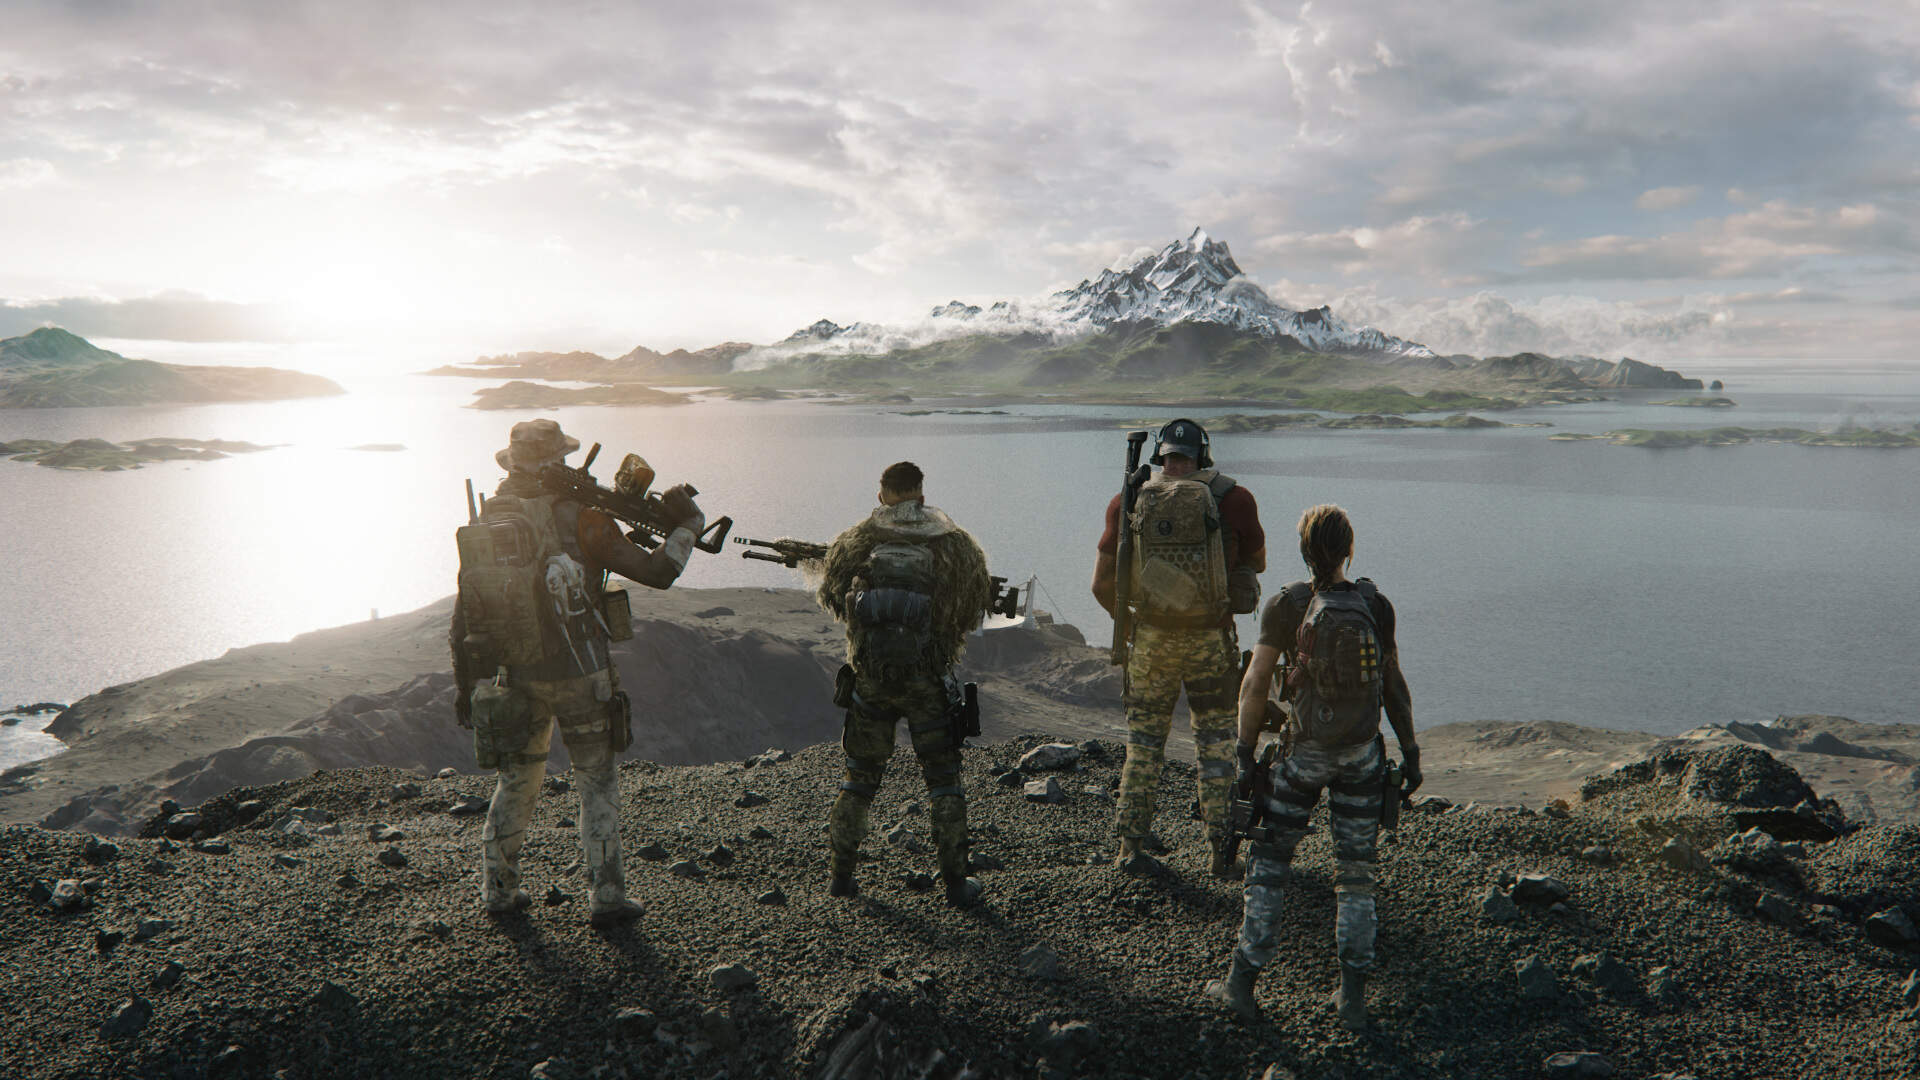 Ghost Recon Breakpoint Release Date: PvP, Trailer, Raid, Stadia - Everything We Know